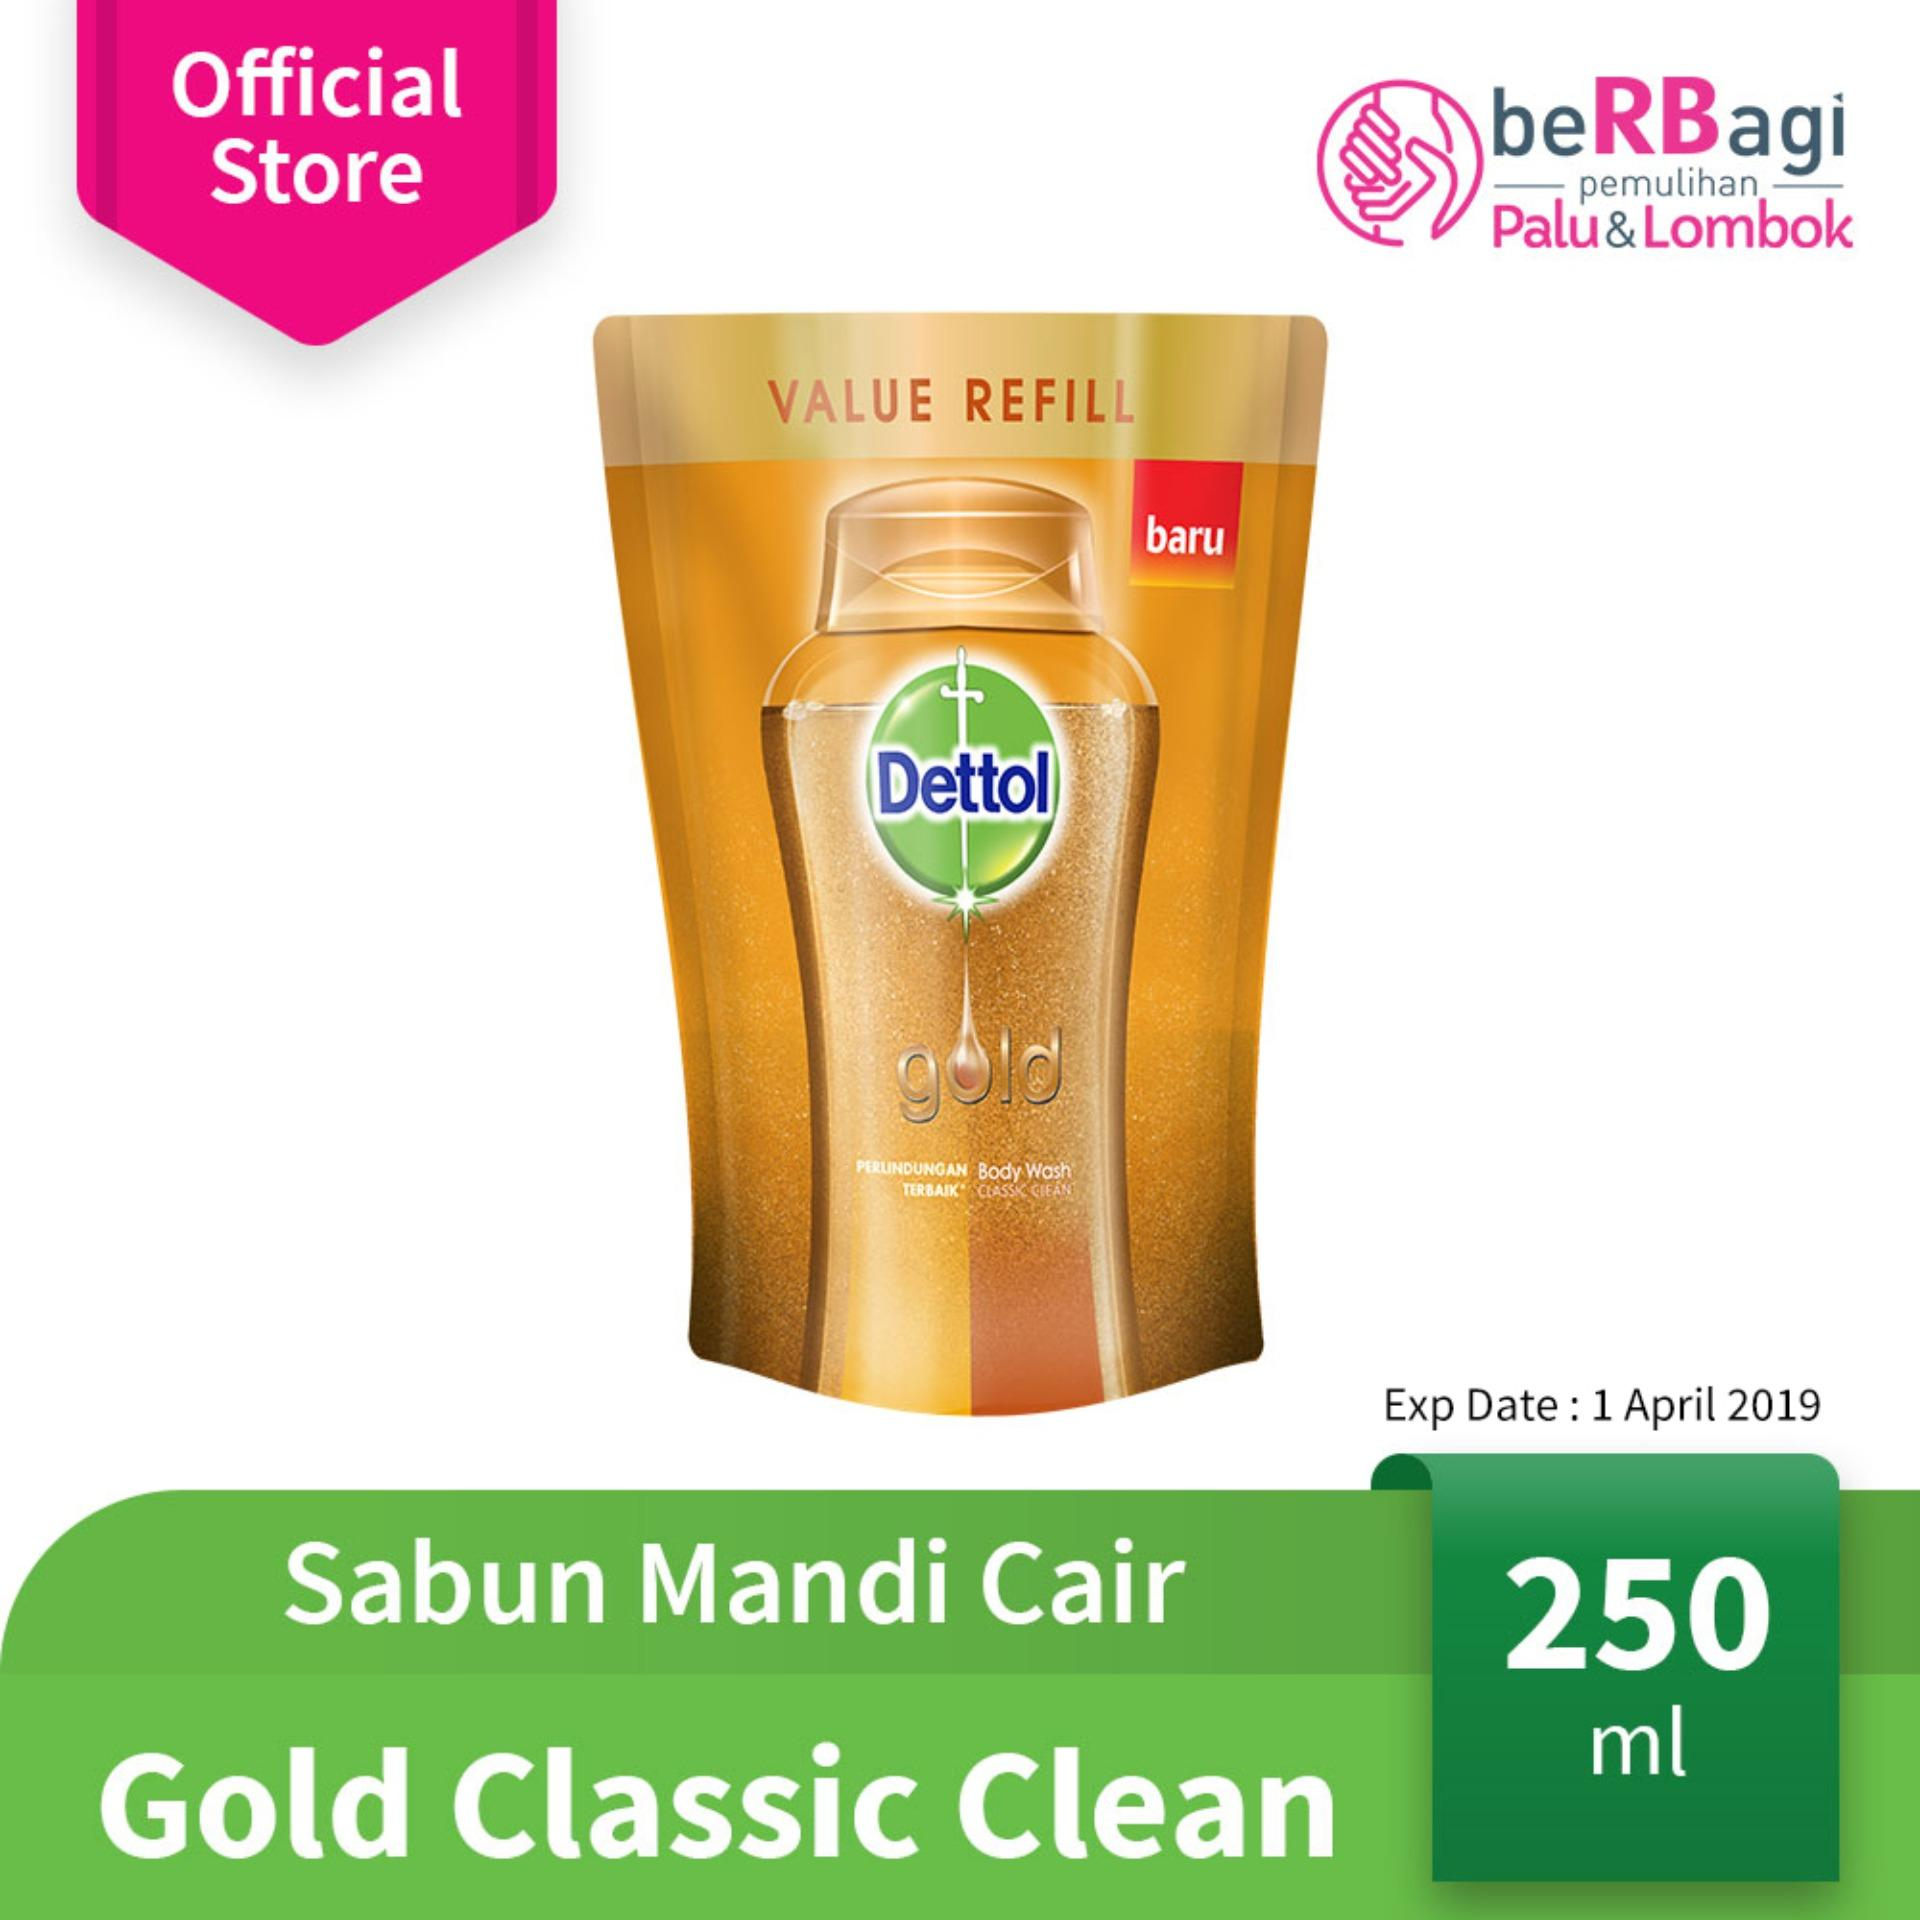 Sabun Mandi Lazada Dove Go Fresh Revive Body Wash Pump 550ml Dettol Bodywash Gold Classic Clean 250ml Cair Ed 1 April 2019